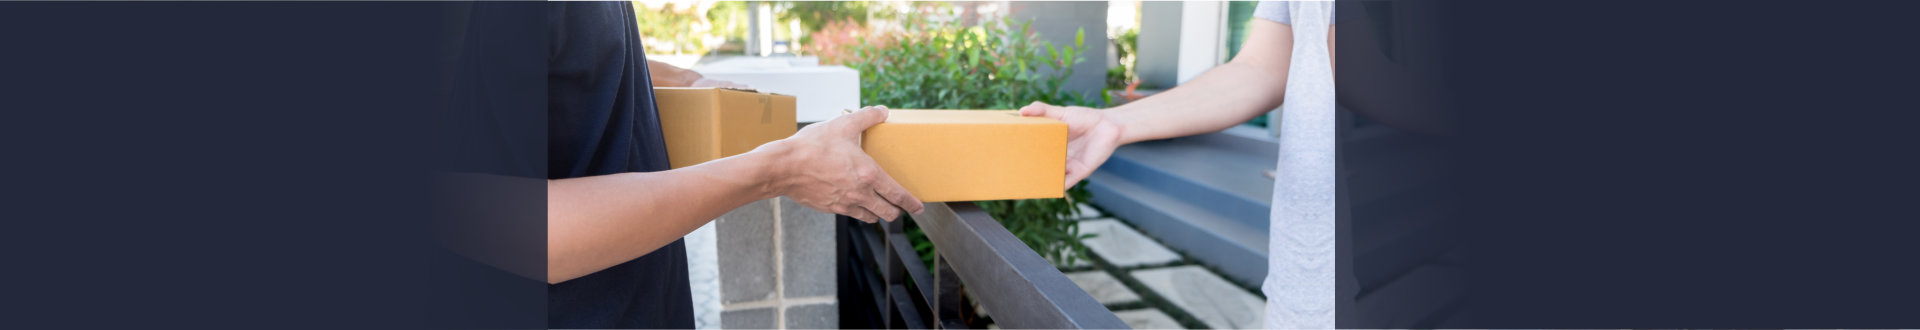 delivery man handing a box to a customer